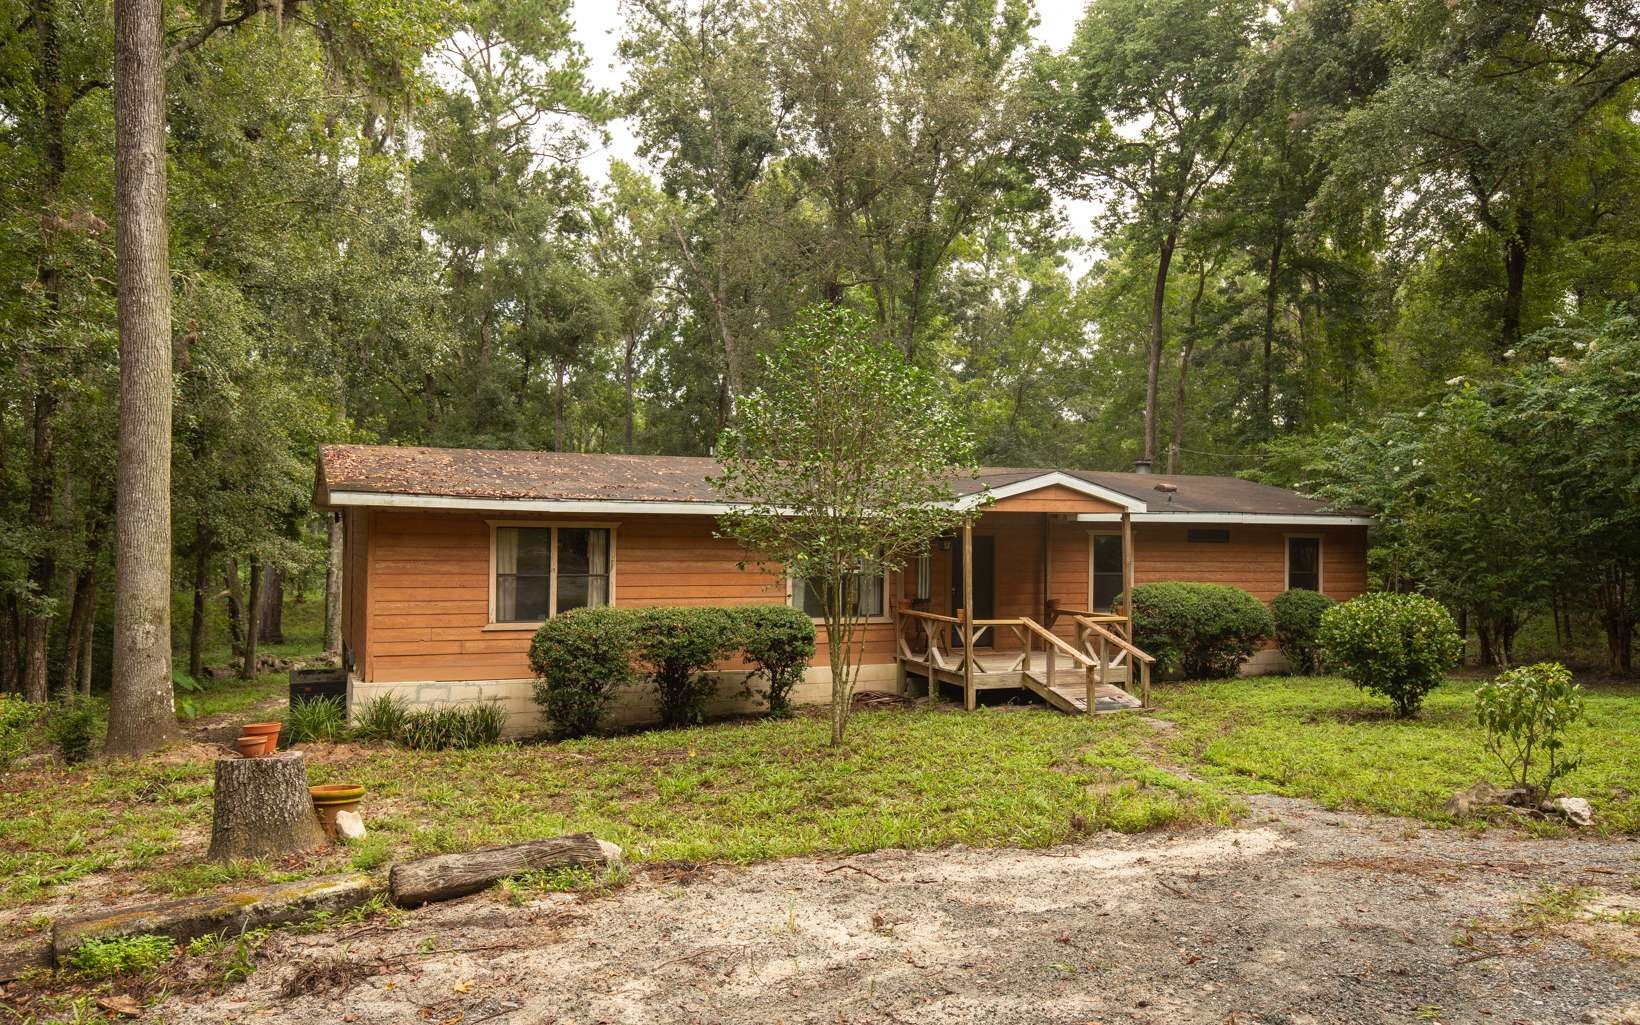 Residential property for sale in Live Oak , FL  for $124,500